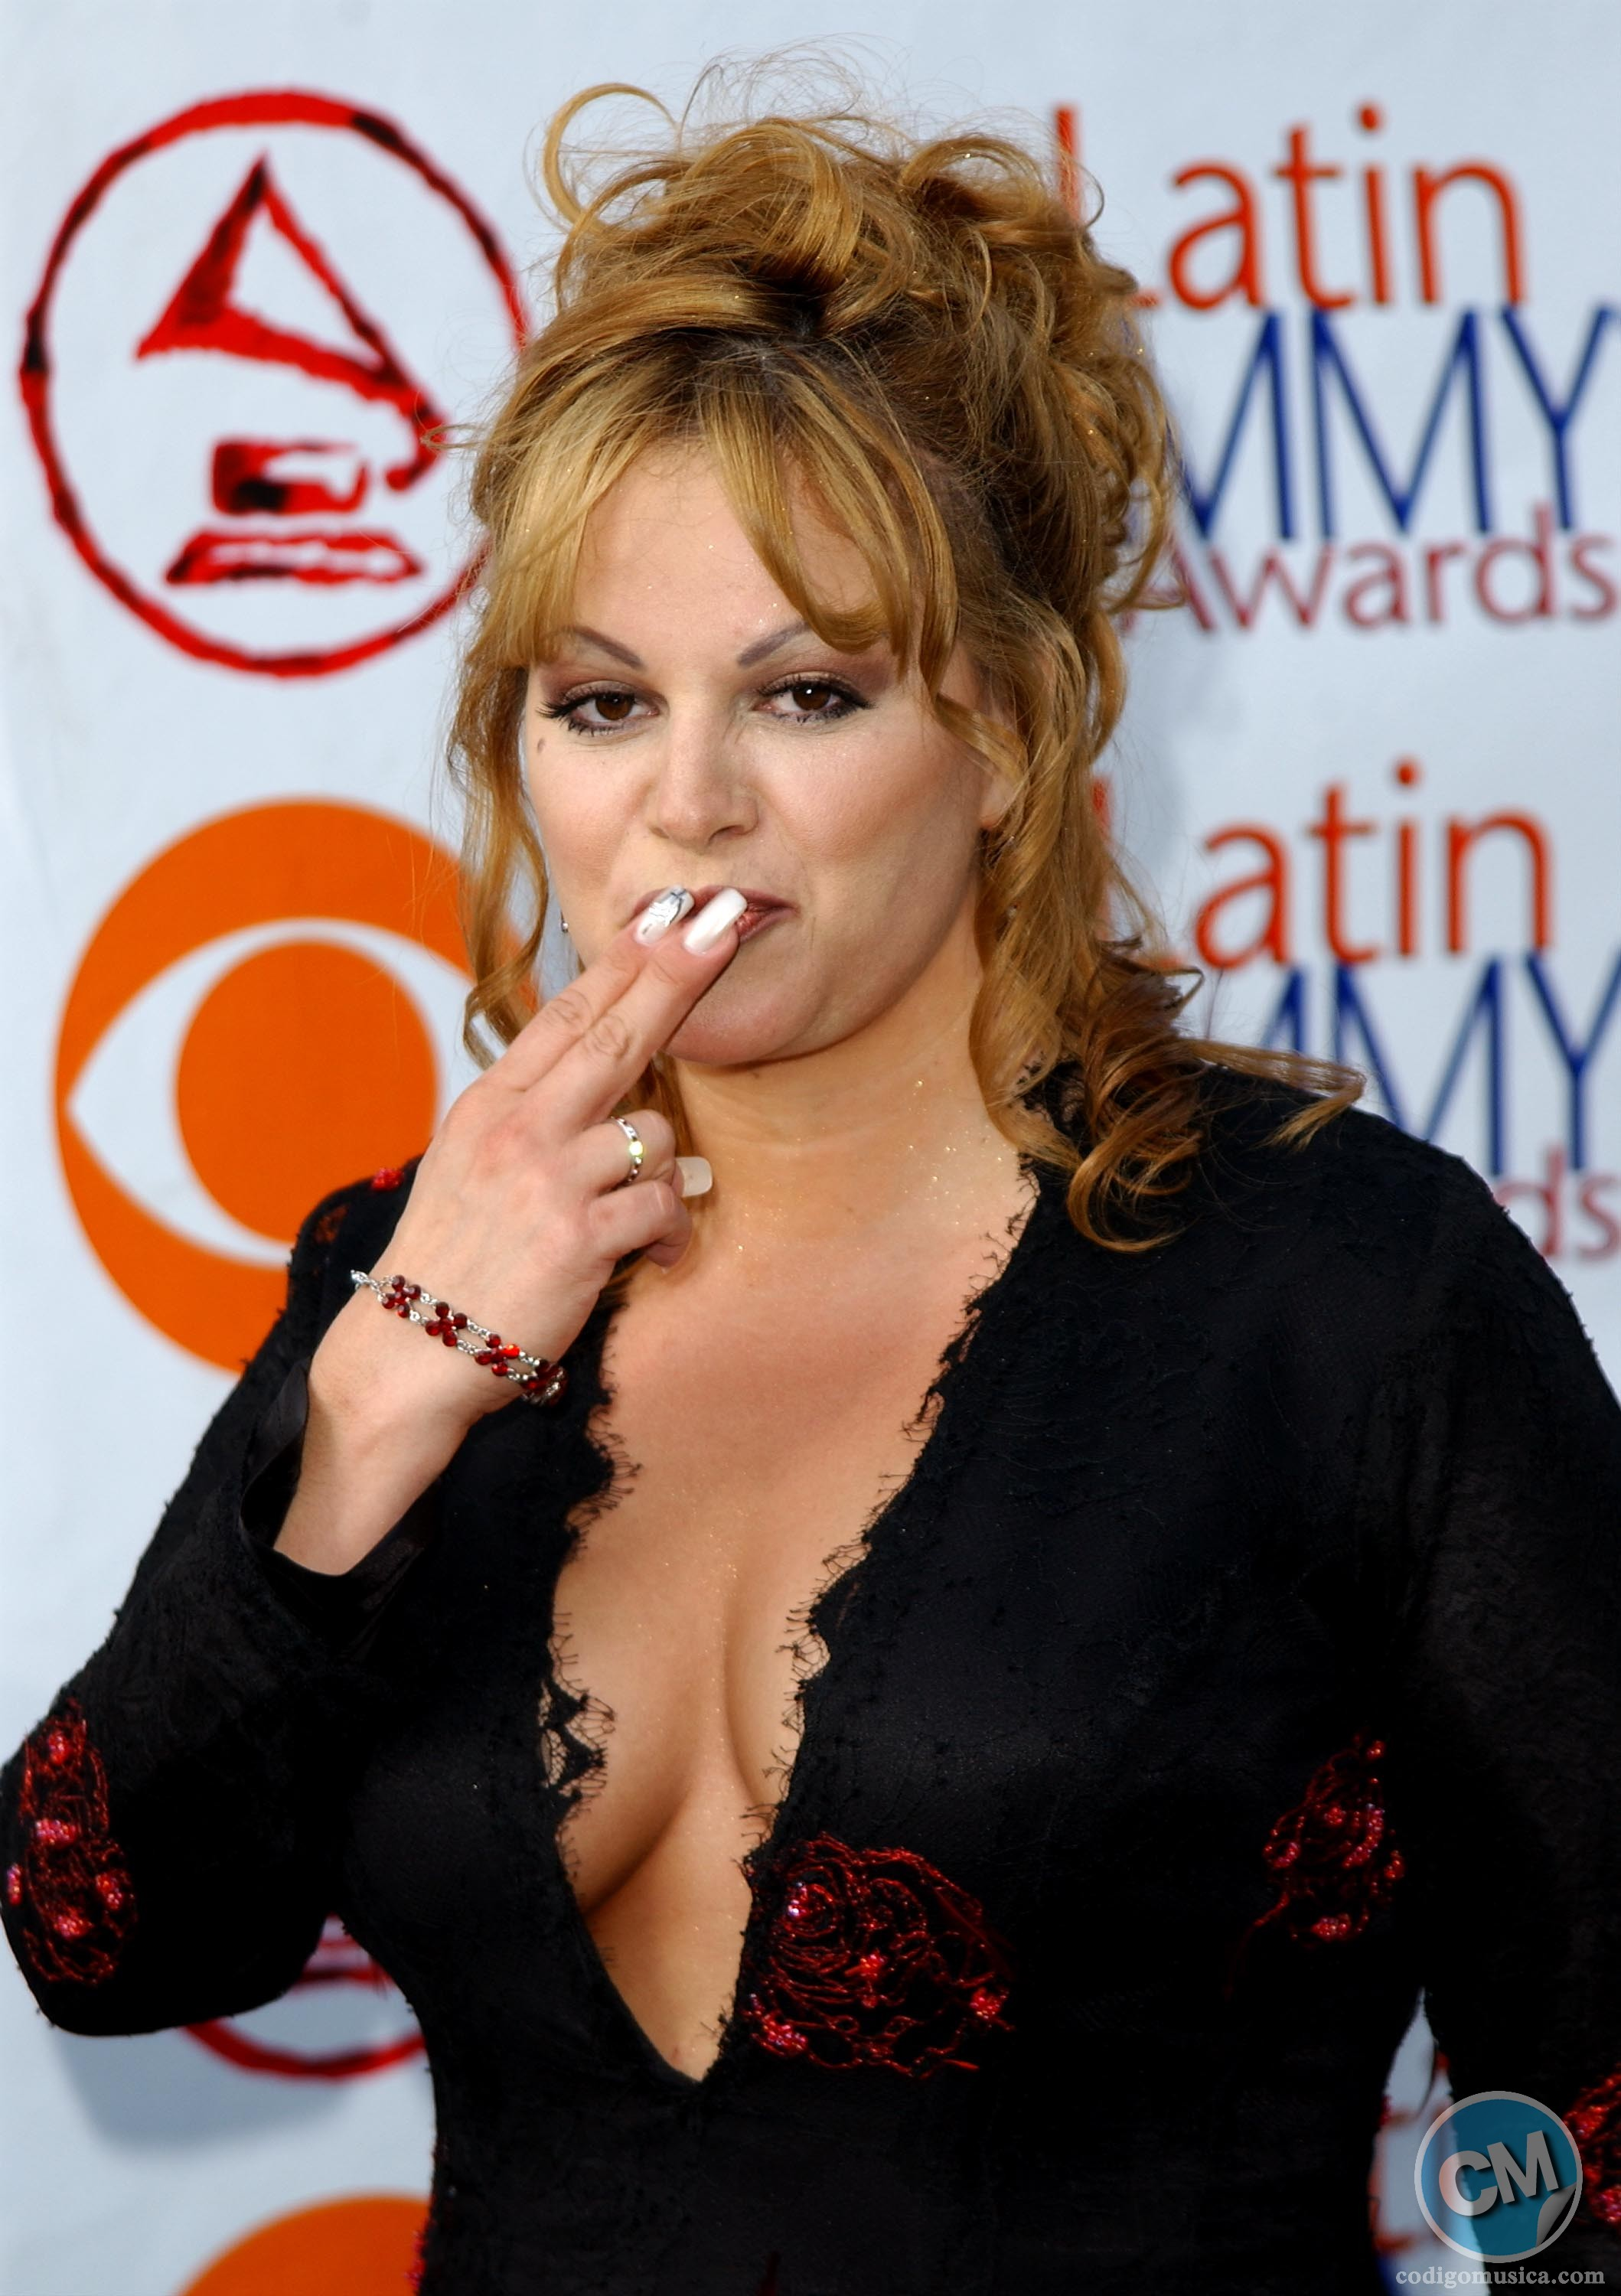 HOLLYWOOD - SEPTEMBER 18:  Singer Jenni Rivera attends the 3rd Annual Latin Grammy Awards at the Kodak Theatre on September 18, 2002 in Hollywood, California.  (Photo by Robert Mora/Getty Images)